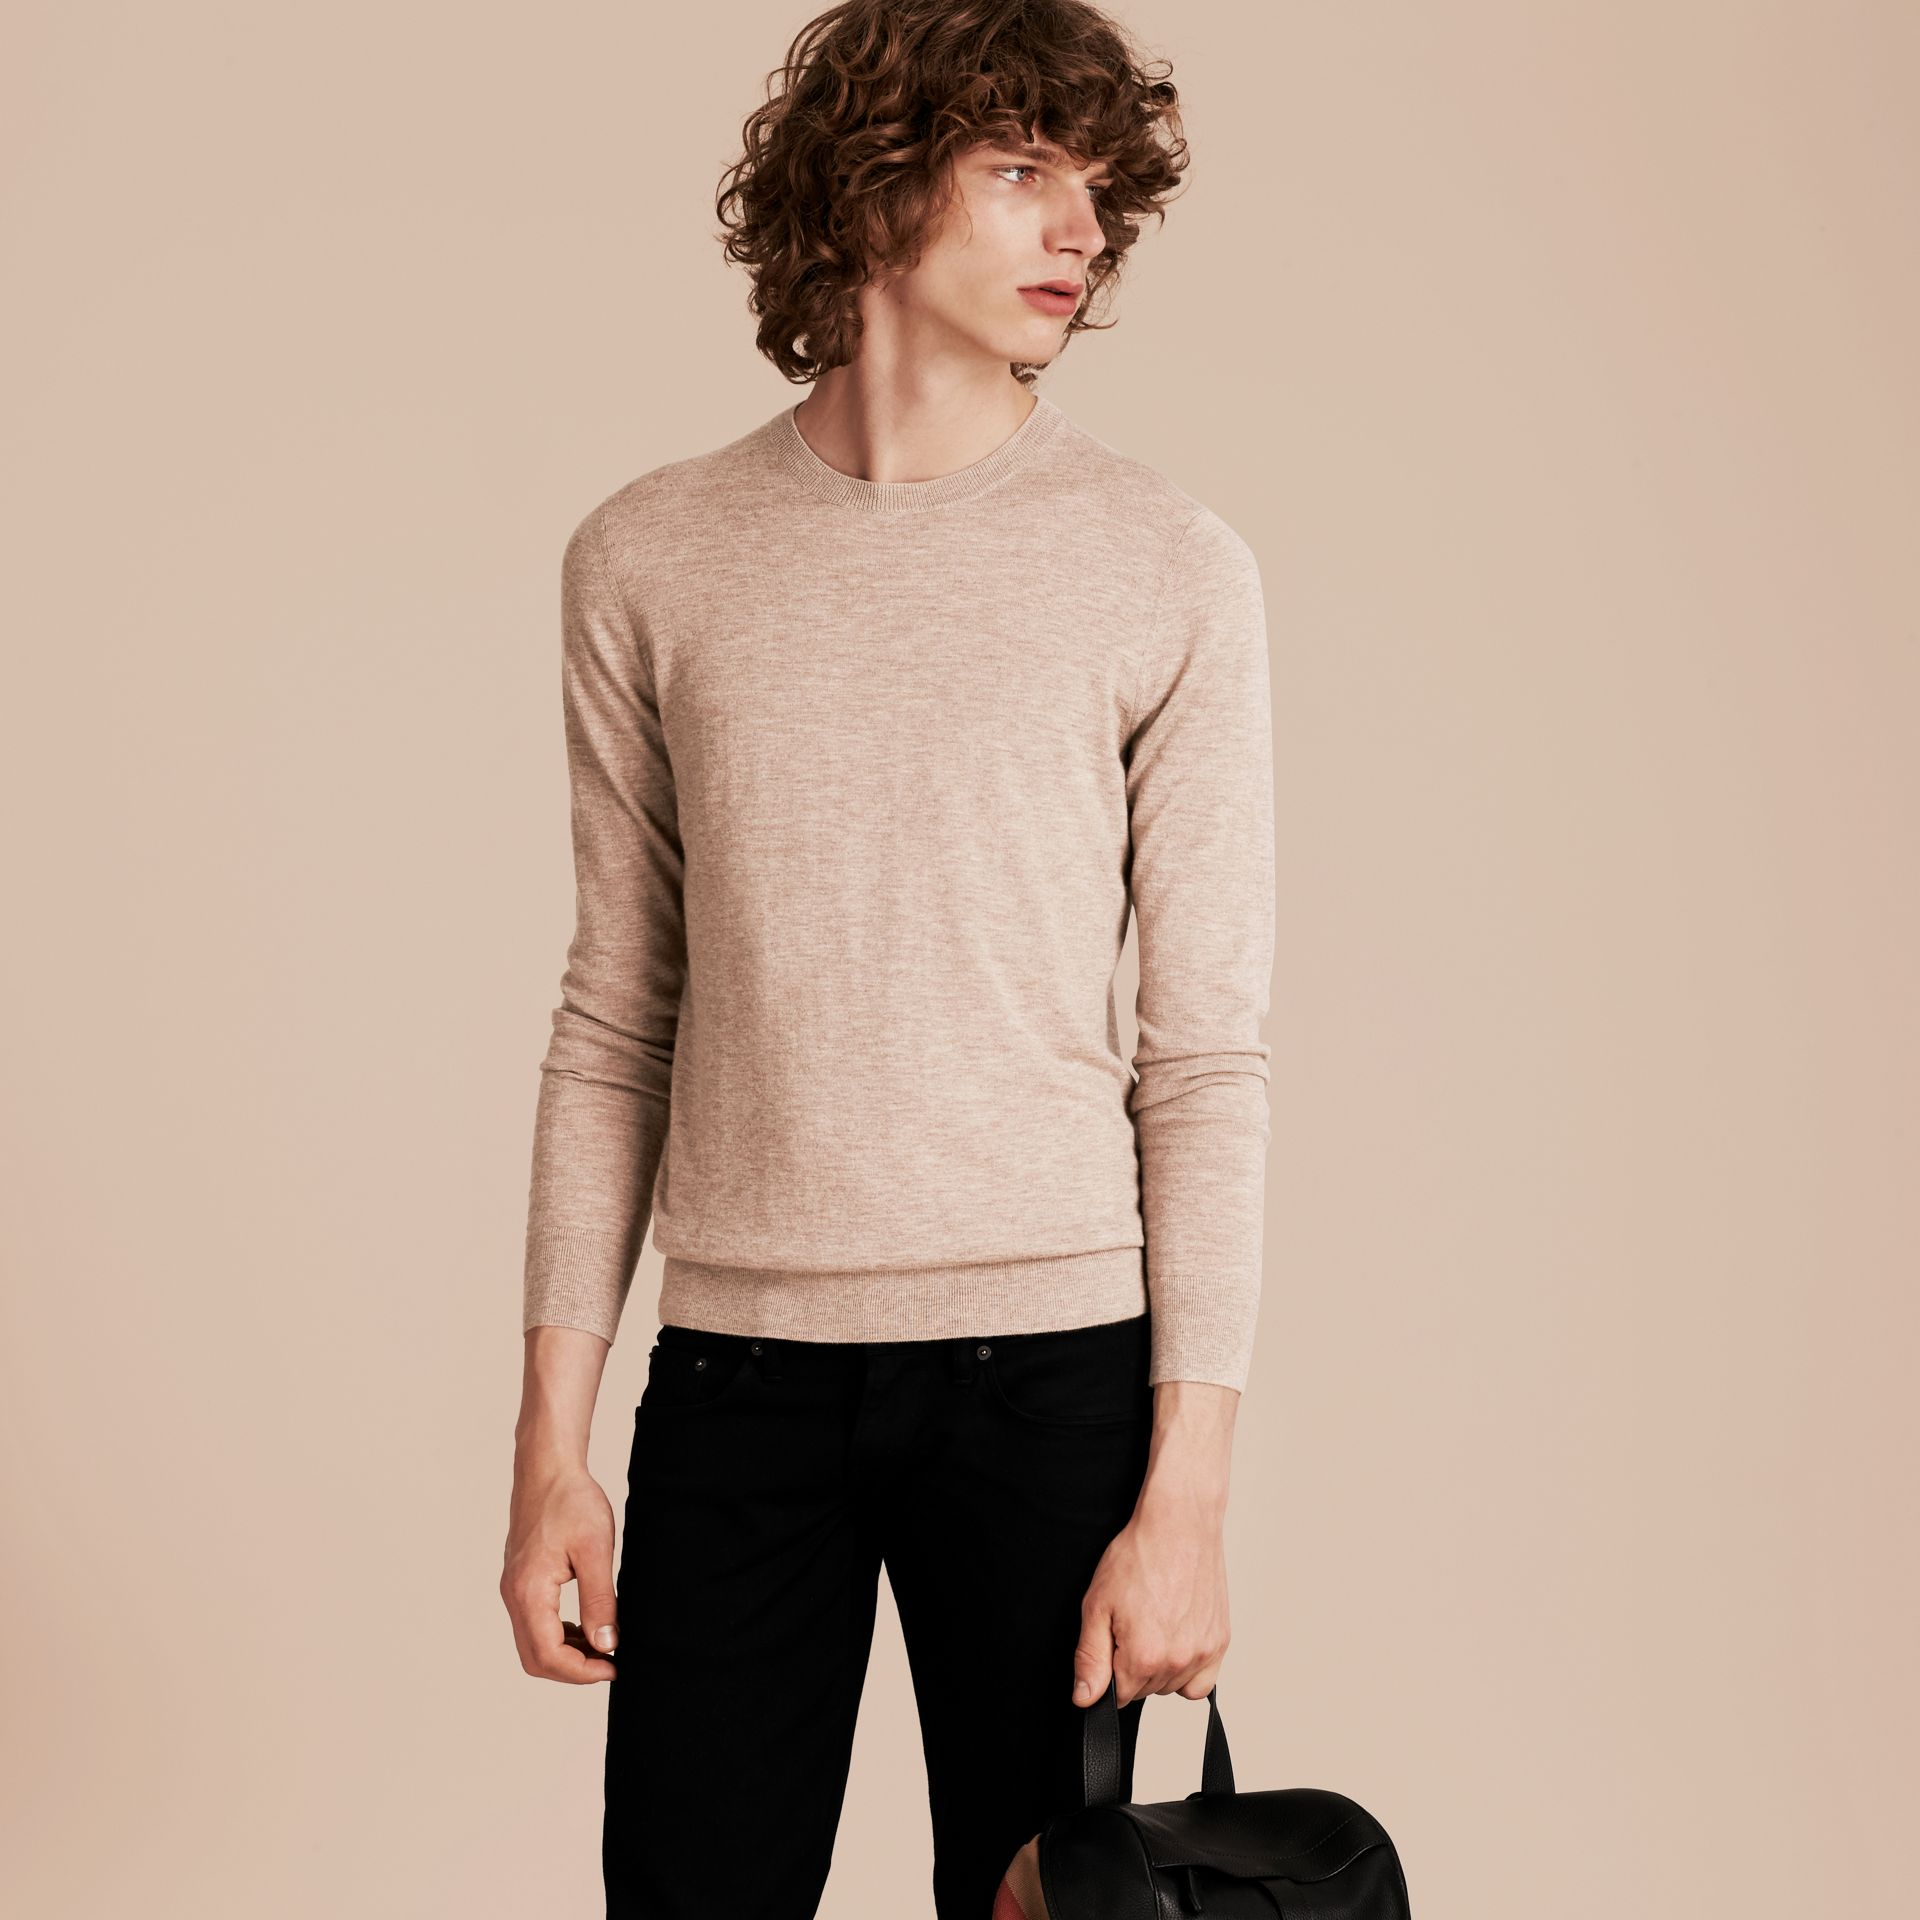 Camel melange Lightweight Crew Neck Cashmere Sweater with Check Trim Camel Melange - gallery image 6